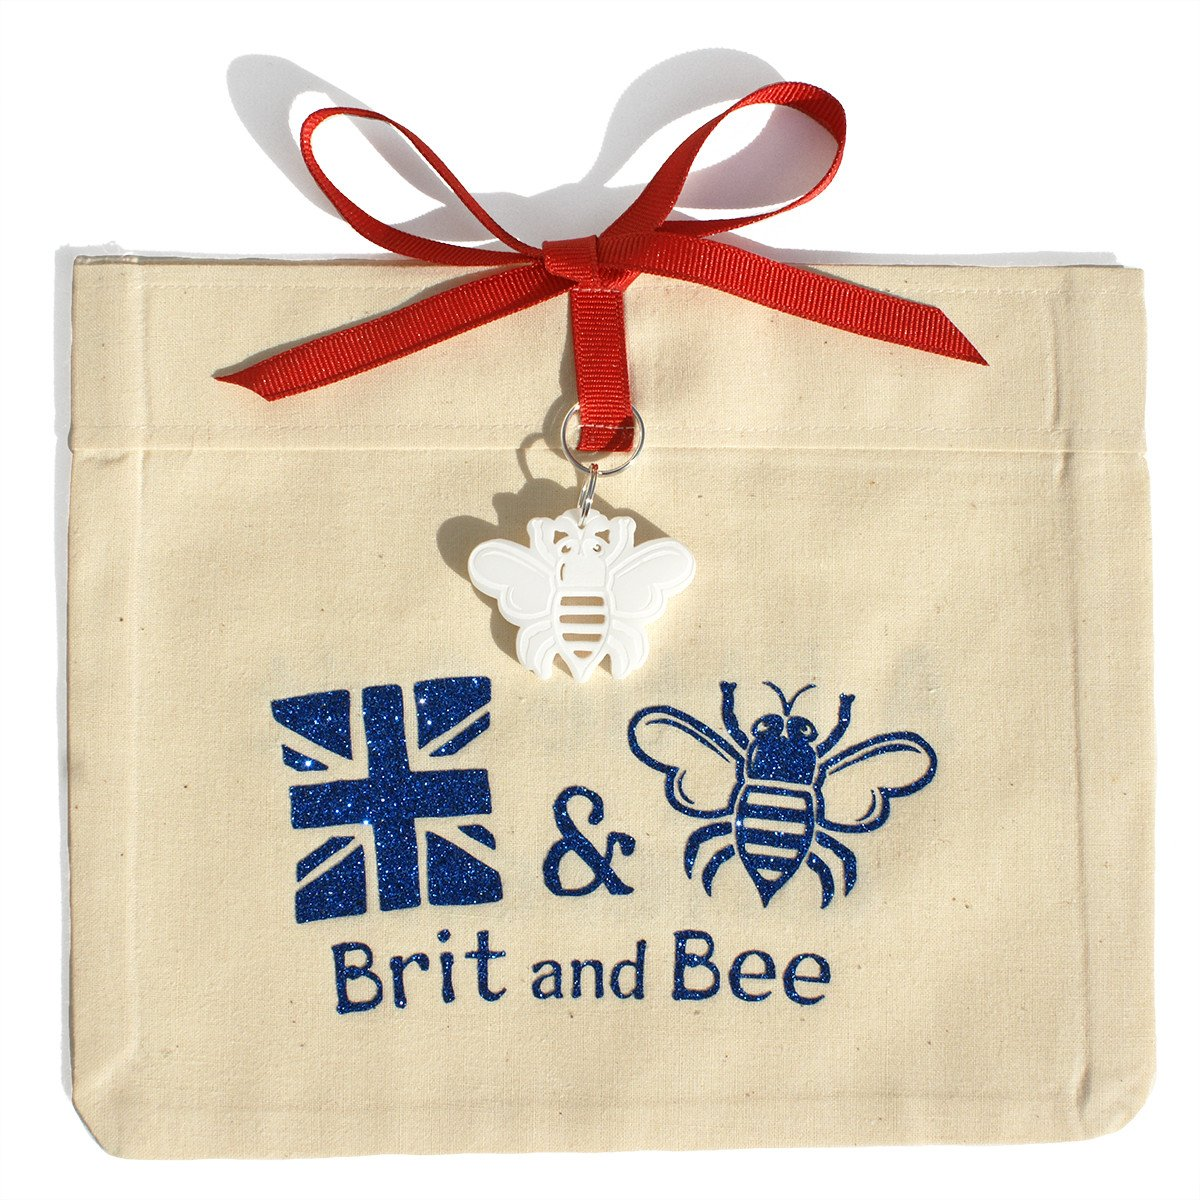 Brit and Bee Love the Flag Ornament Bag